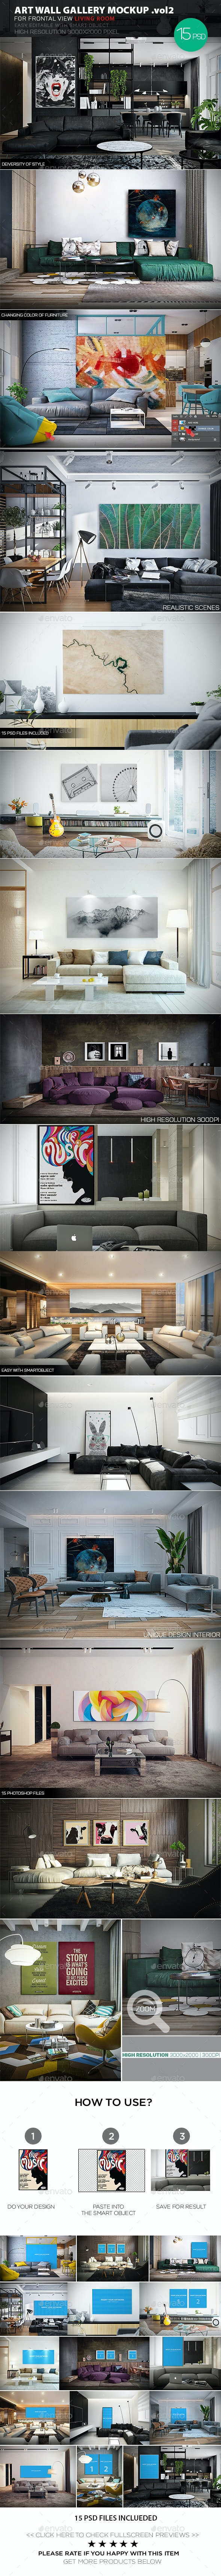 Art Wall Gallery Mockup vol.2 - Frontal View Living Room - Posters Print